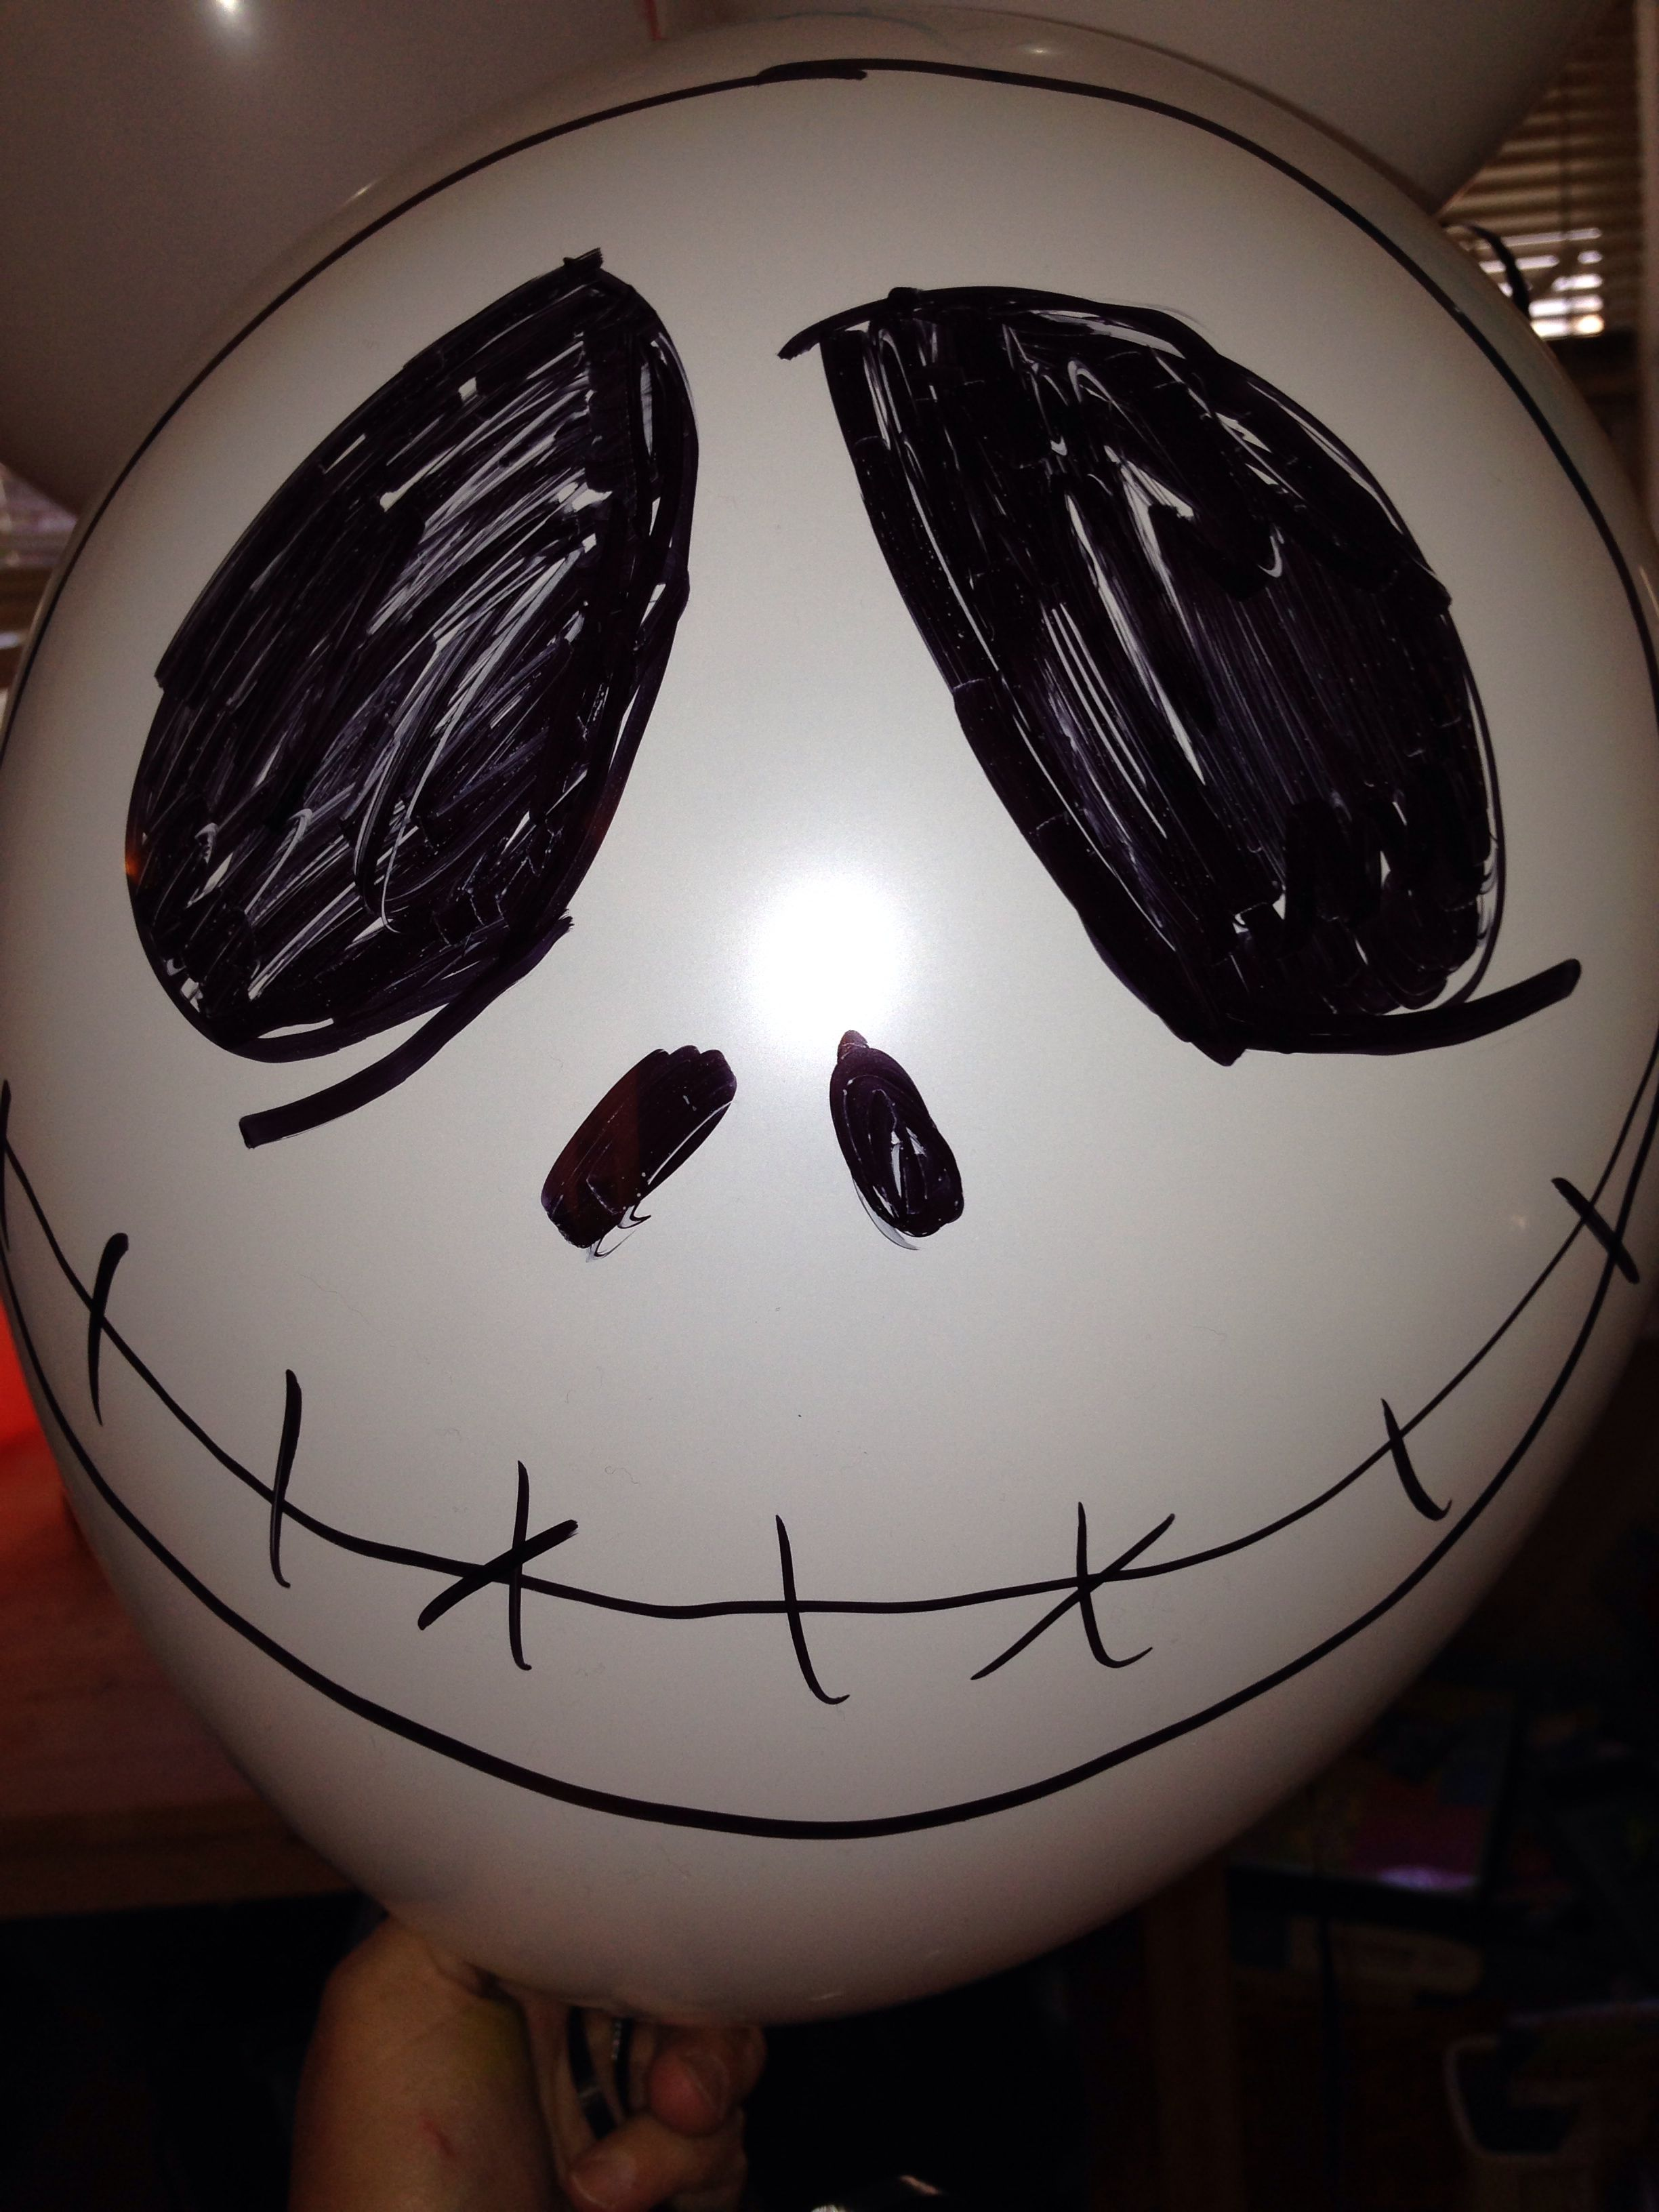 Jack skellington halloween balloon decoration halloween - Jack skellington decorations halloween ...